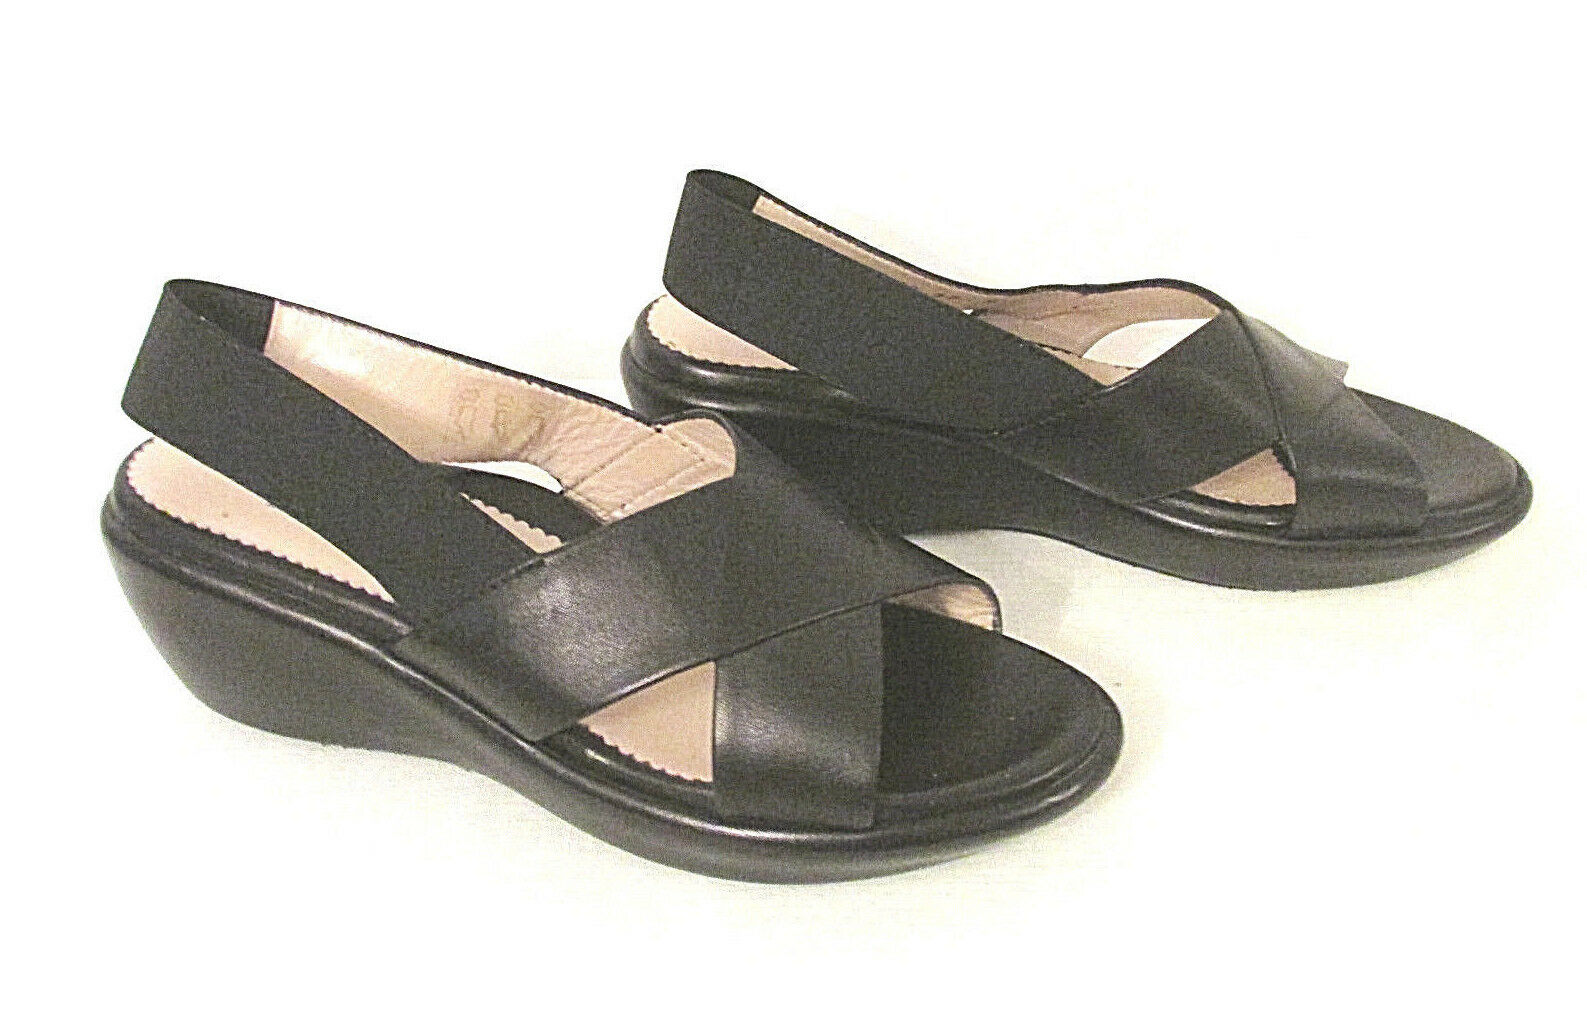 Taryn pink Made in  Women's Wedge Sandal 37 shoes Black Leather Criss Cross